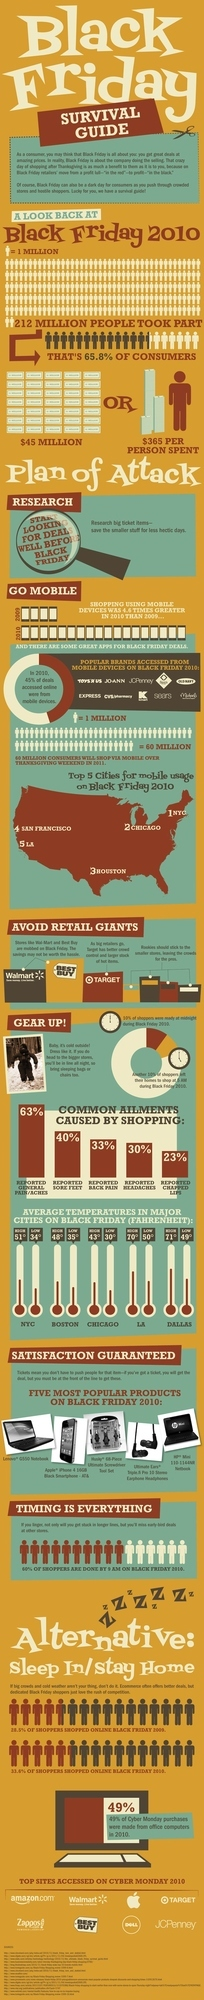 The Black Friday Survival Guide [Infographic]